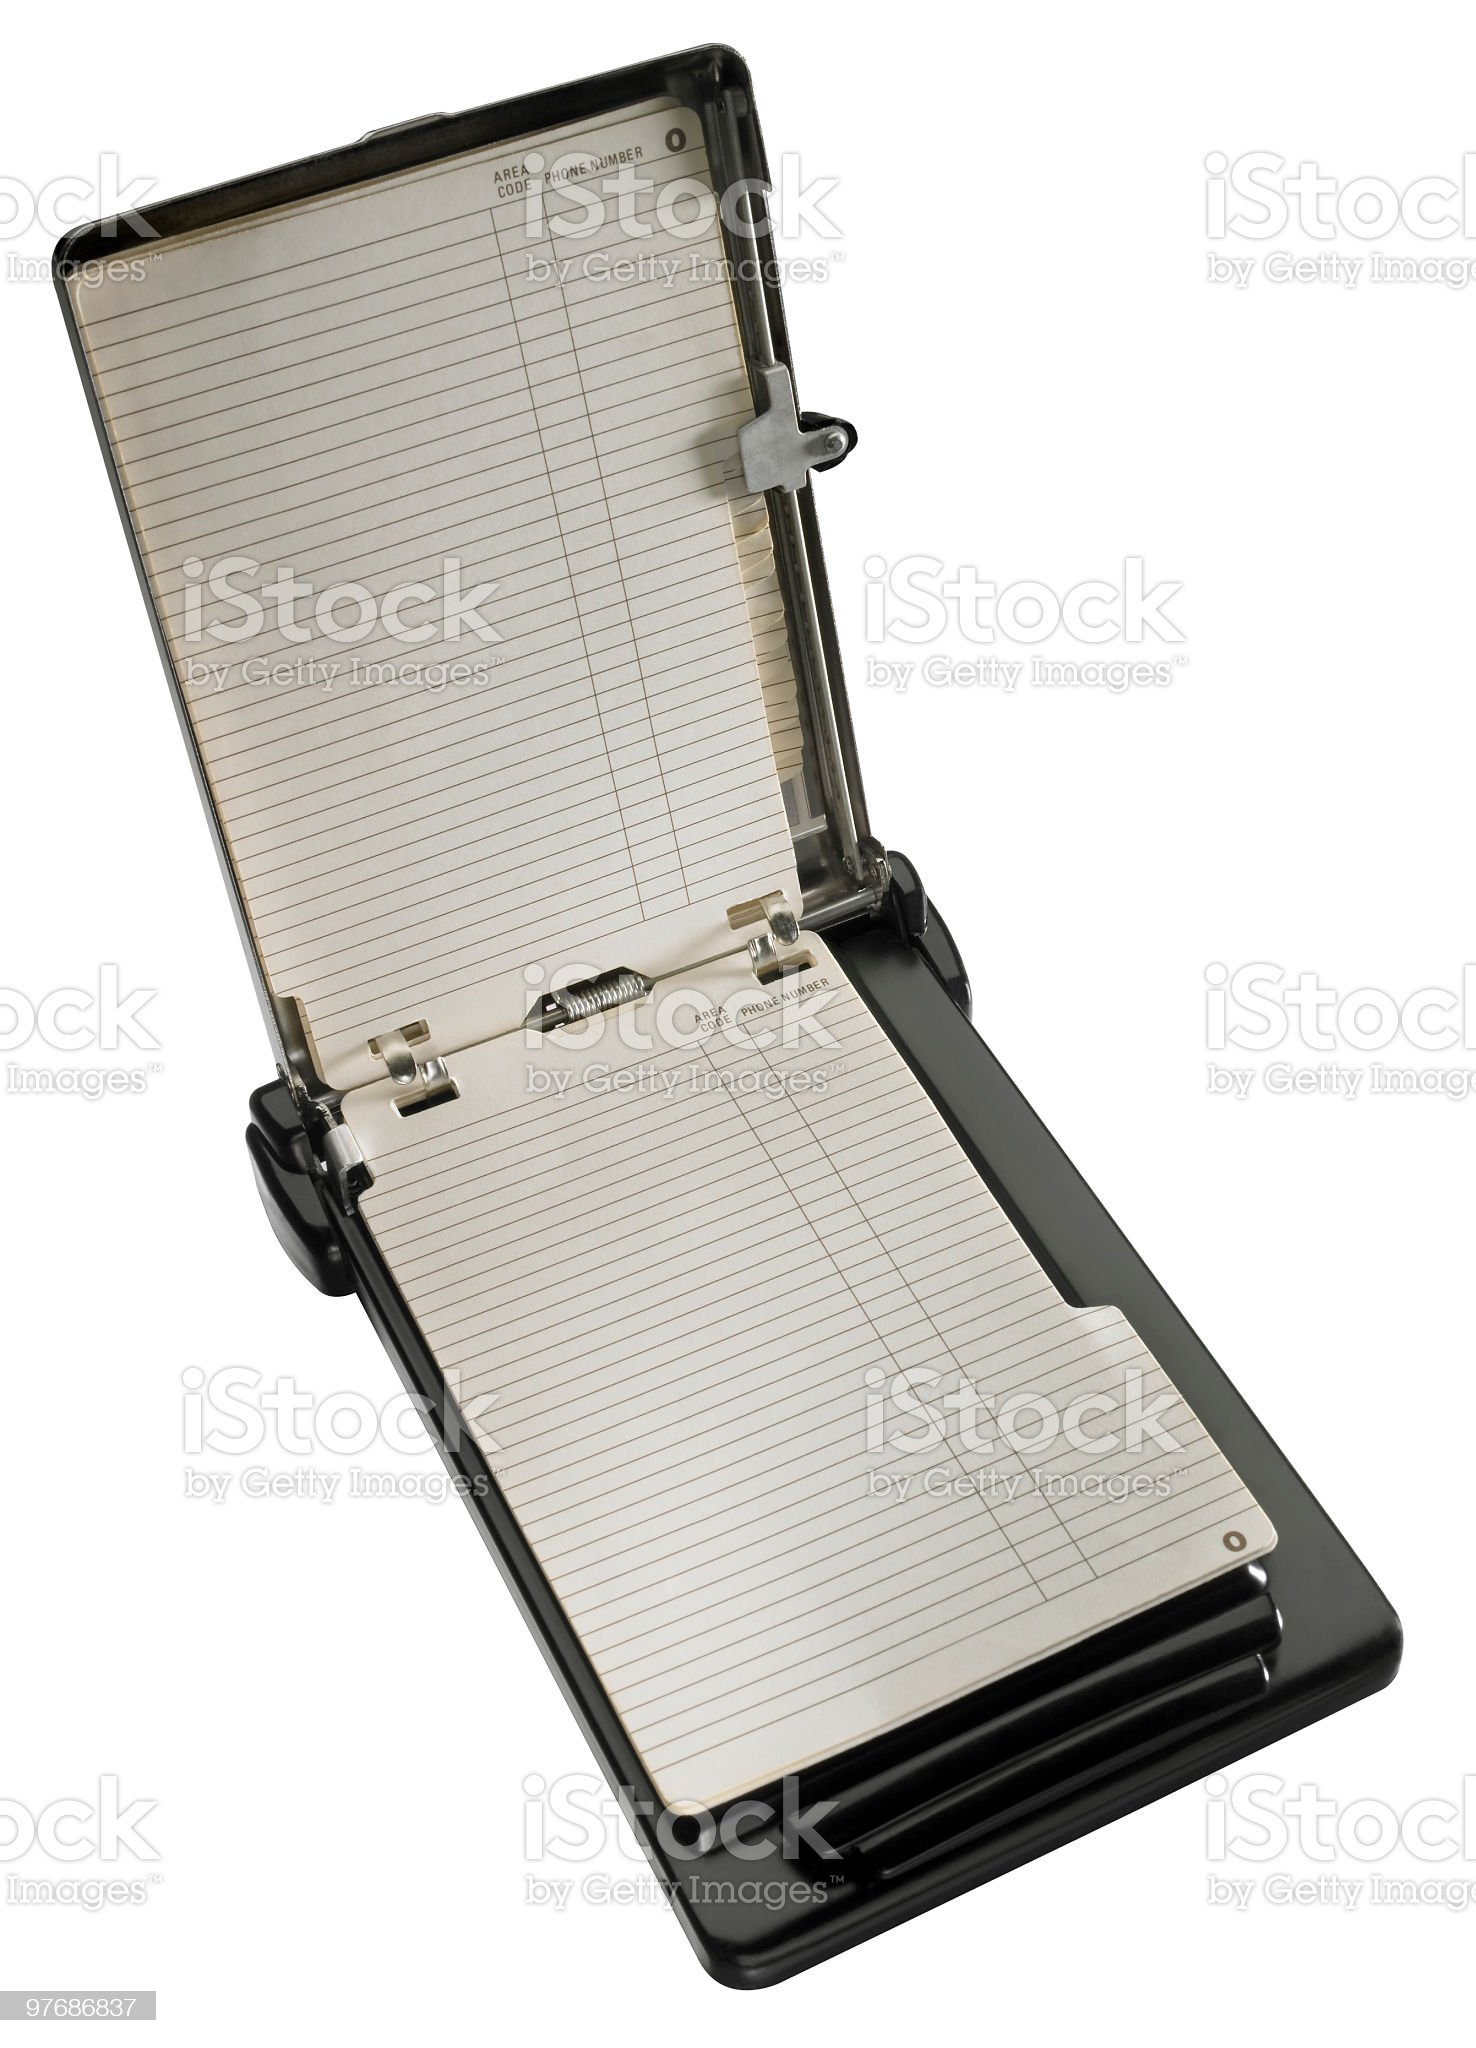 Retro Address Book royalty-free stock photo